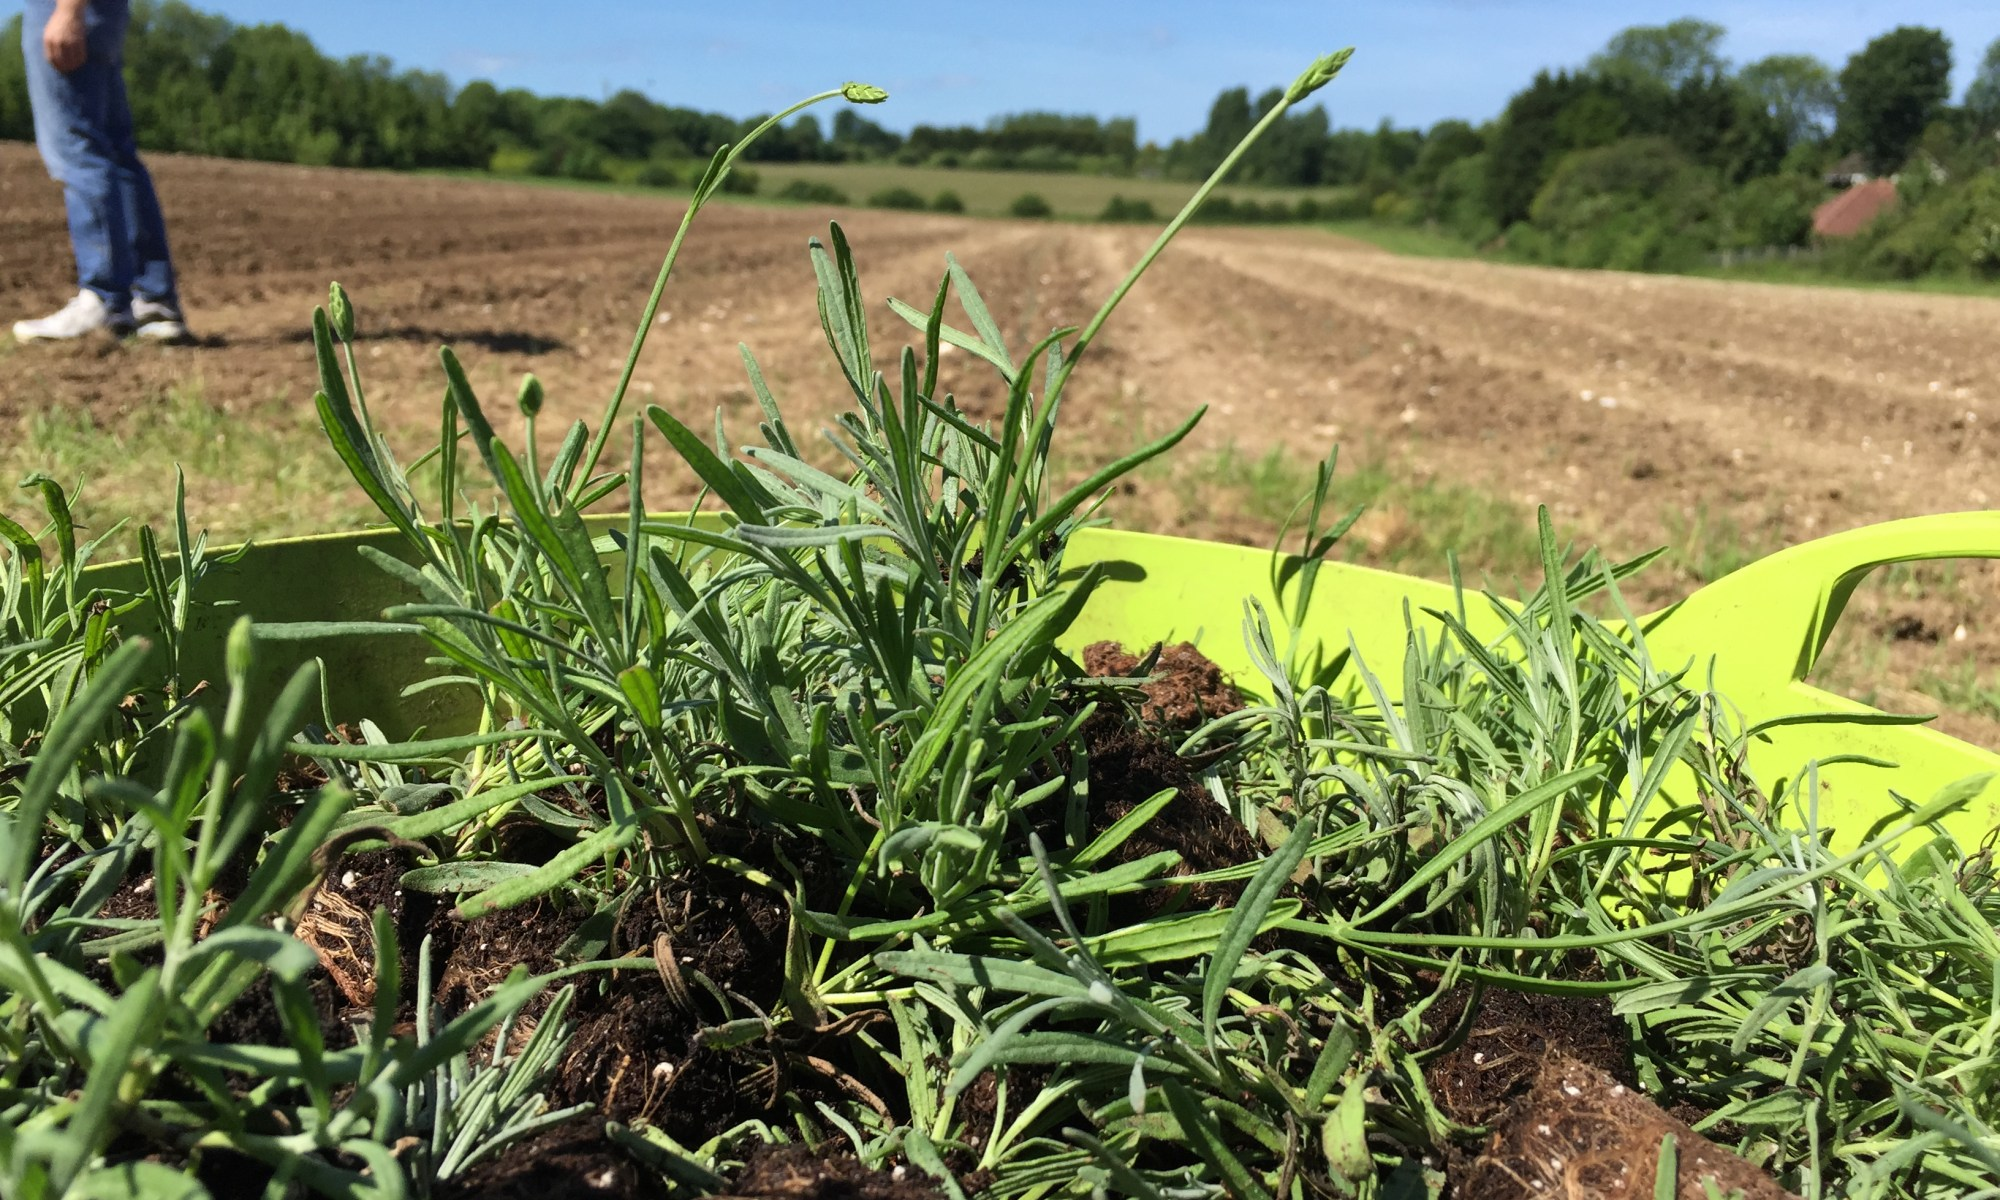 Restoring the Lavender Fields of Carshalton, Wallington and Banstead